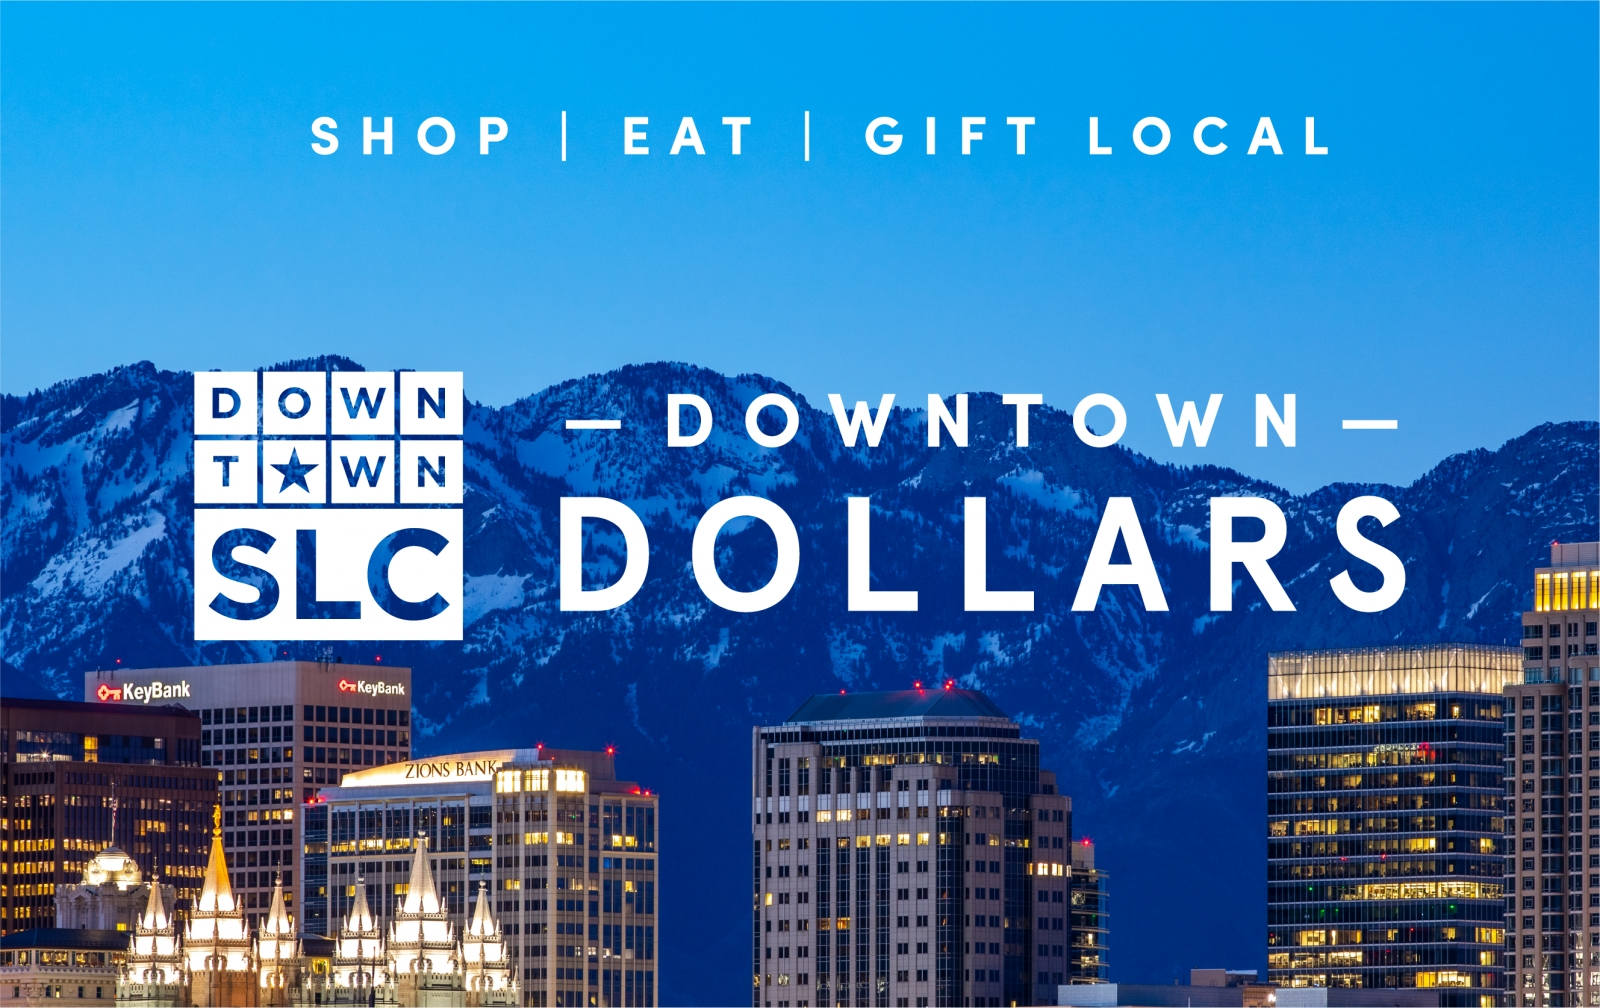 Buy or Gift Downtown Dollars